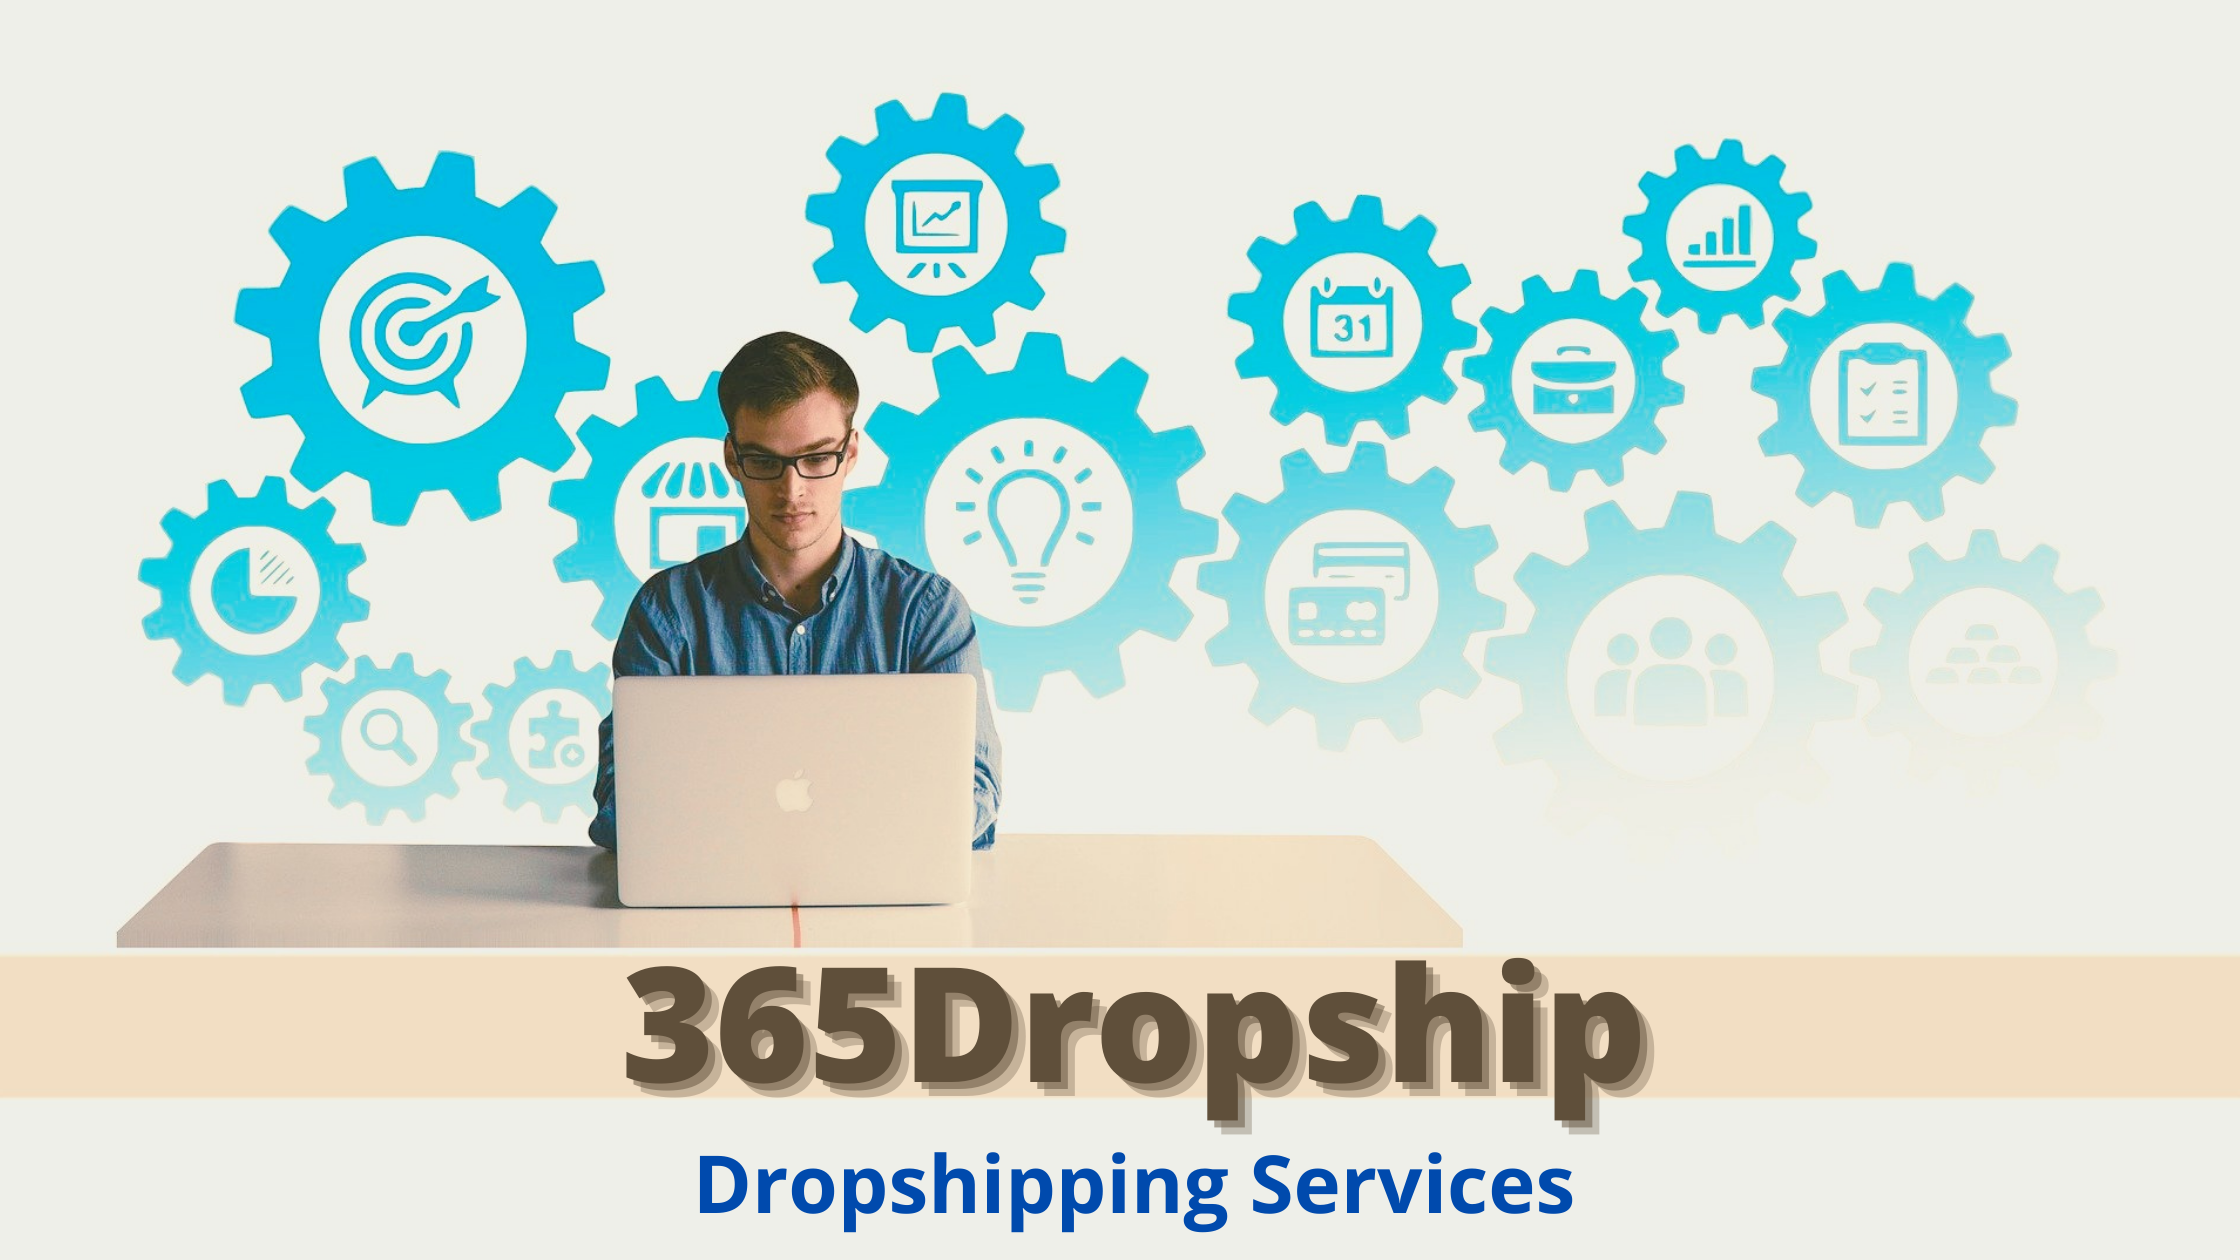 What is 365Dropship